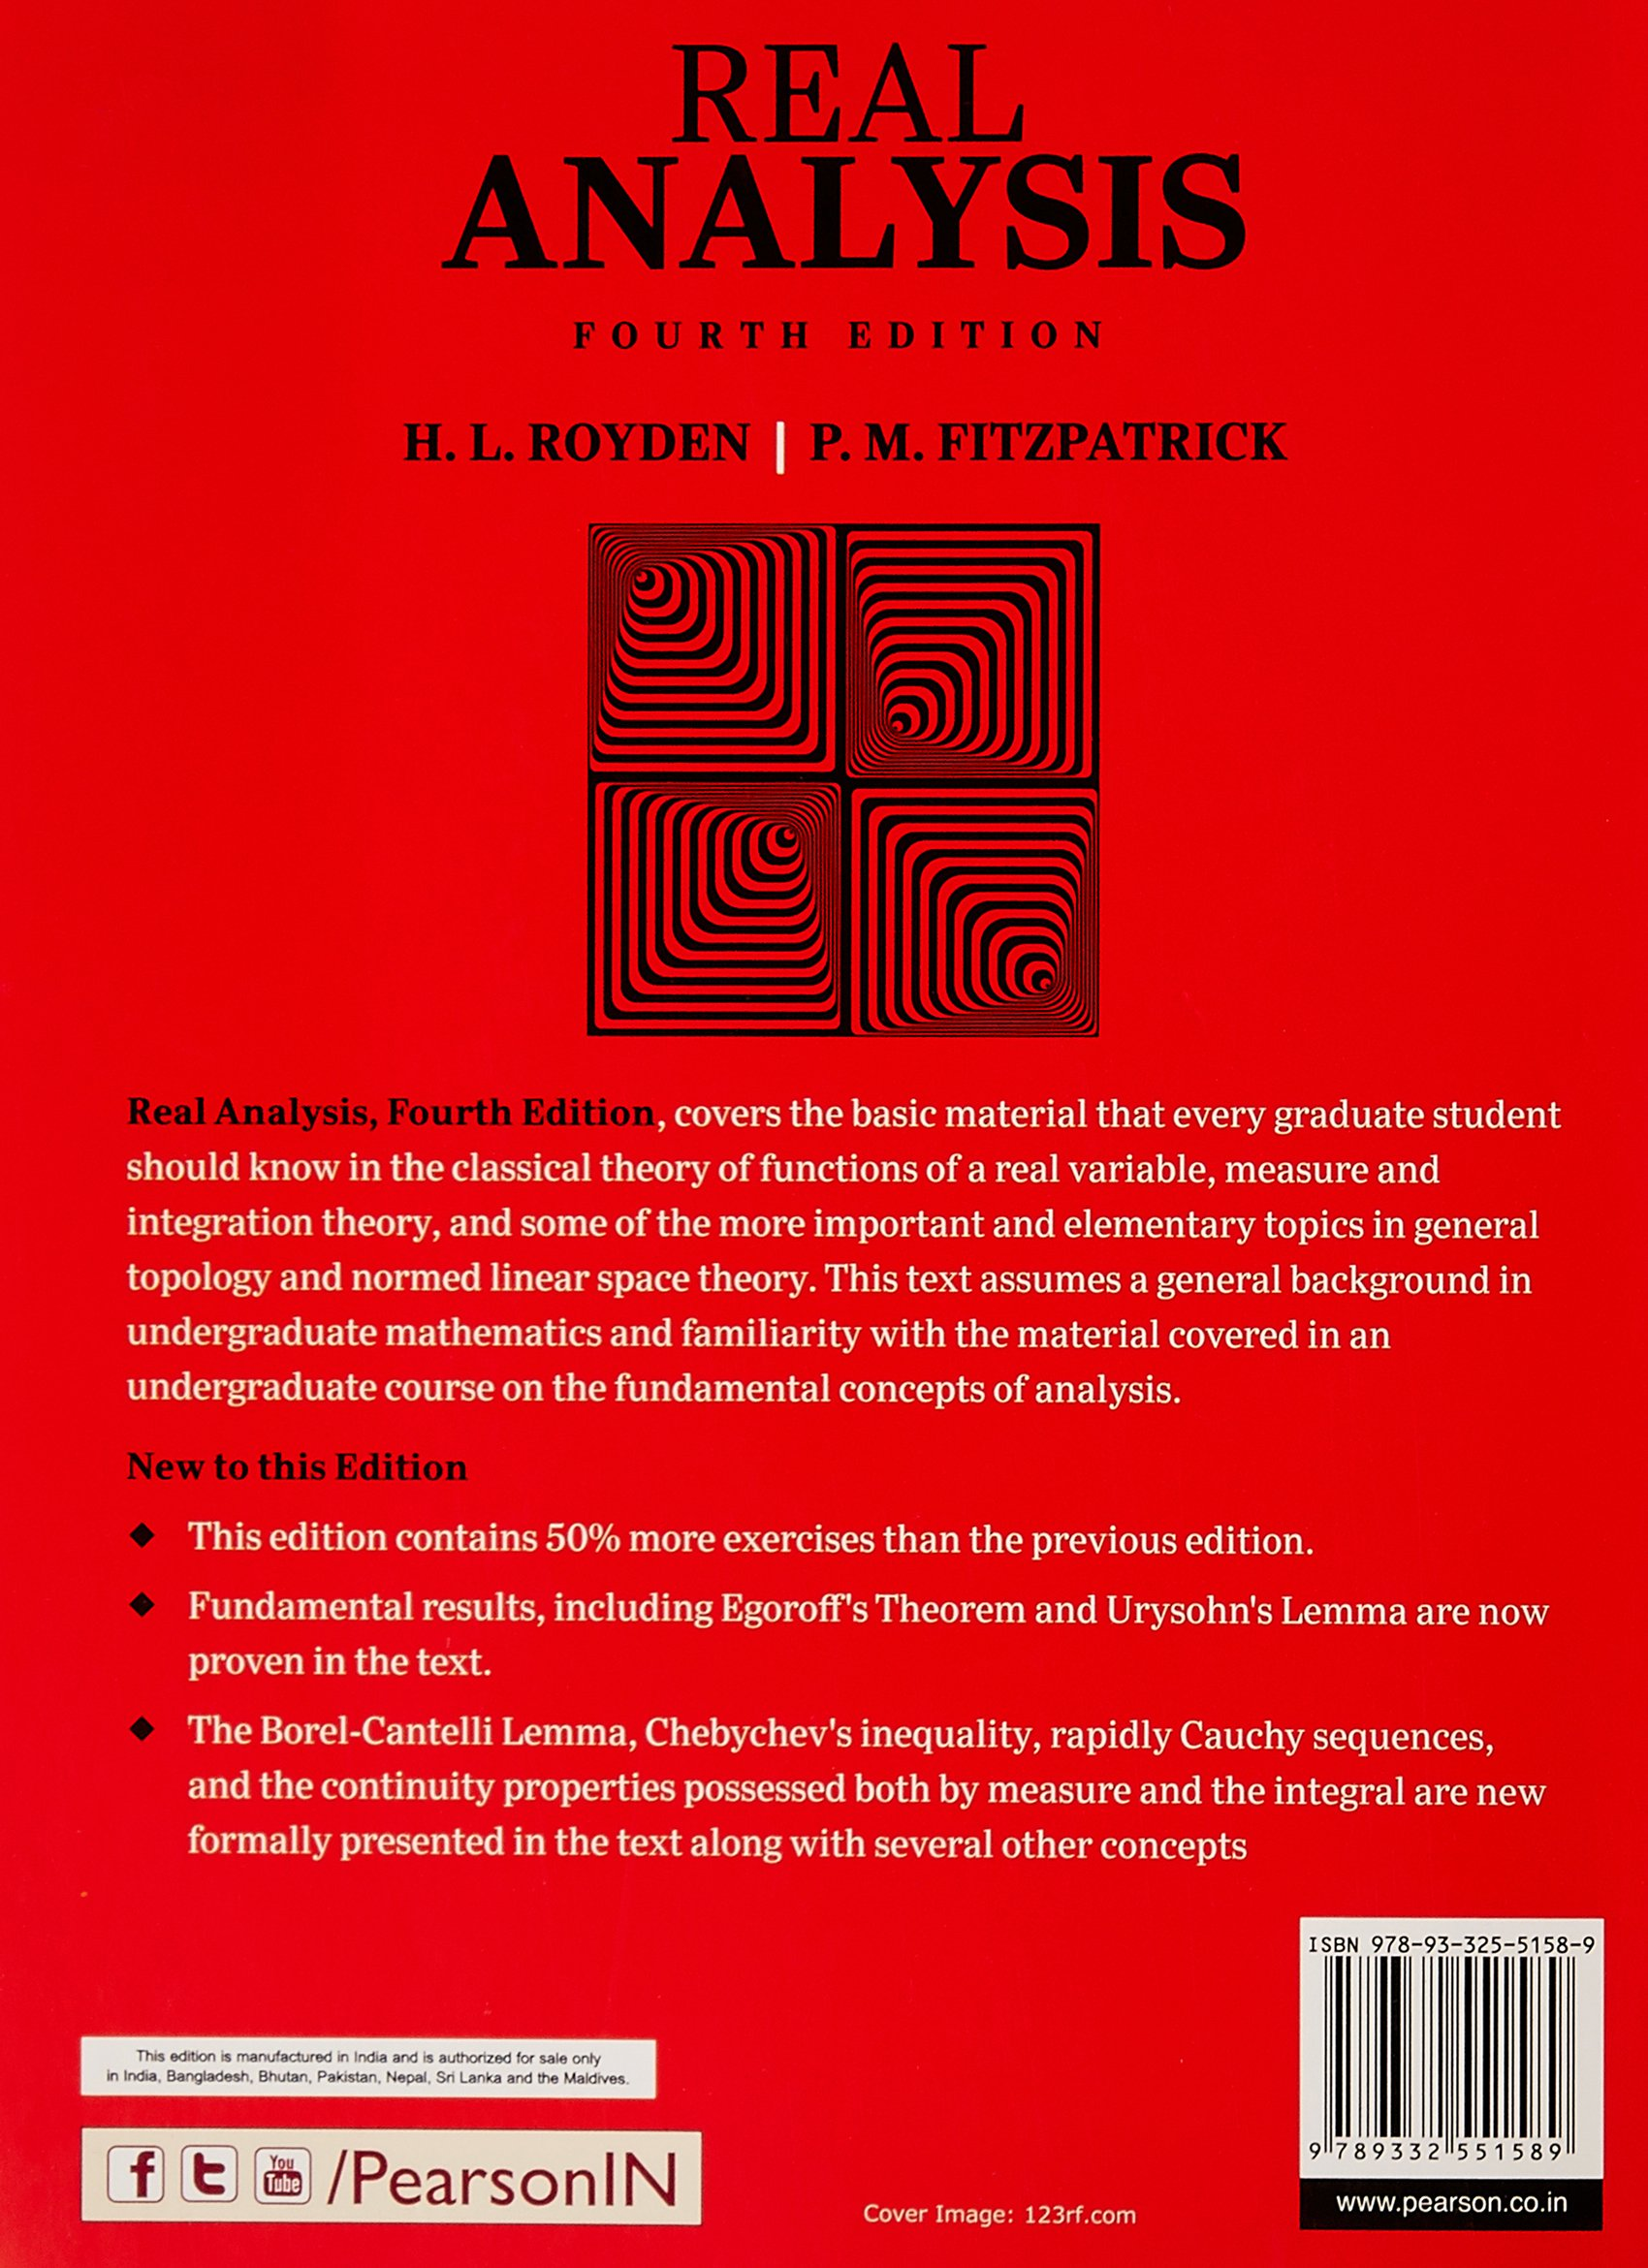 Buy Real Analysis Book Online at Low Prices in India | Real